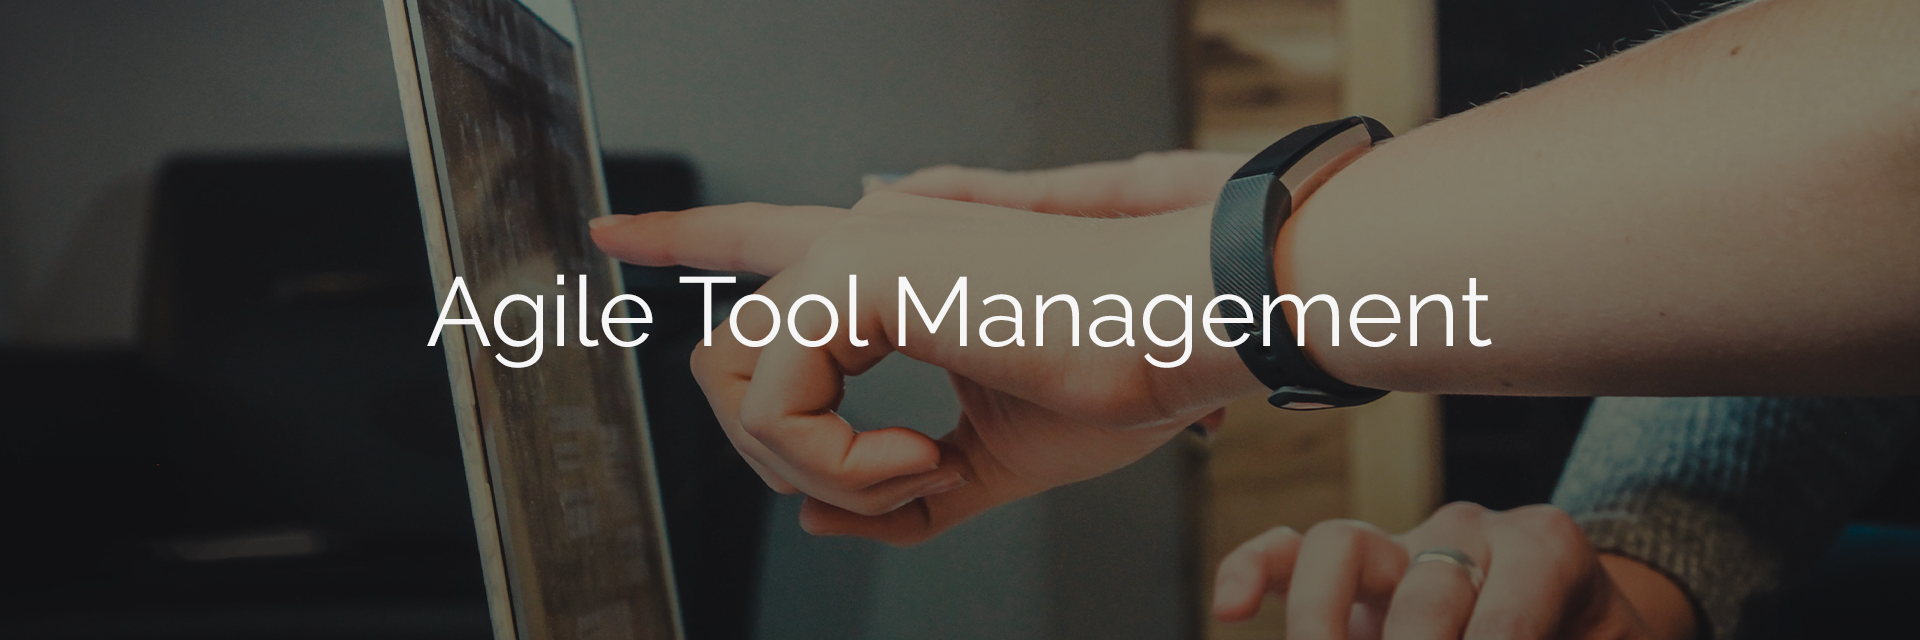 Agile Tool Management